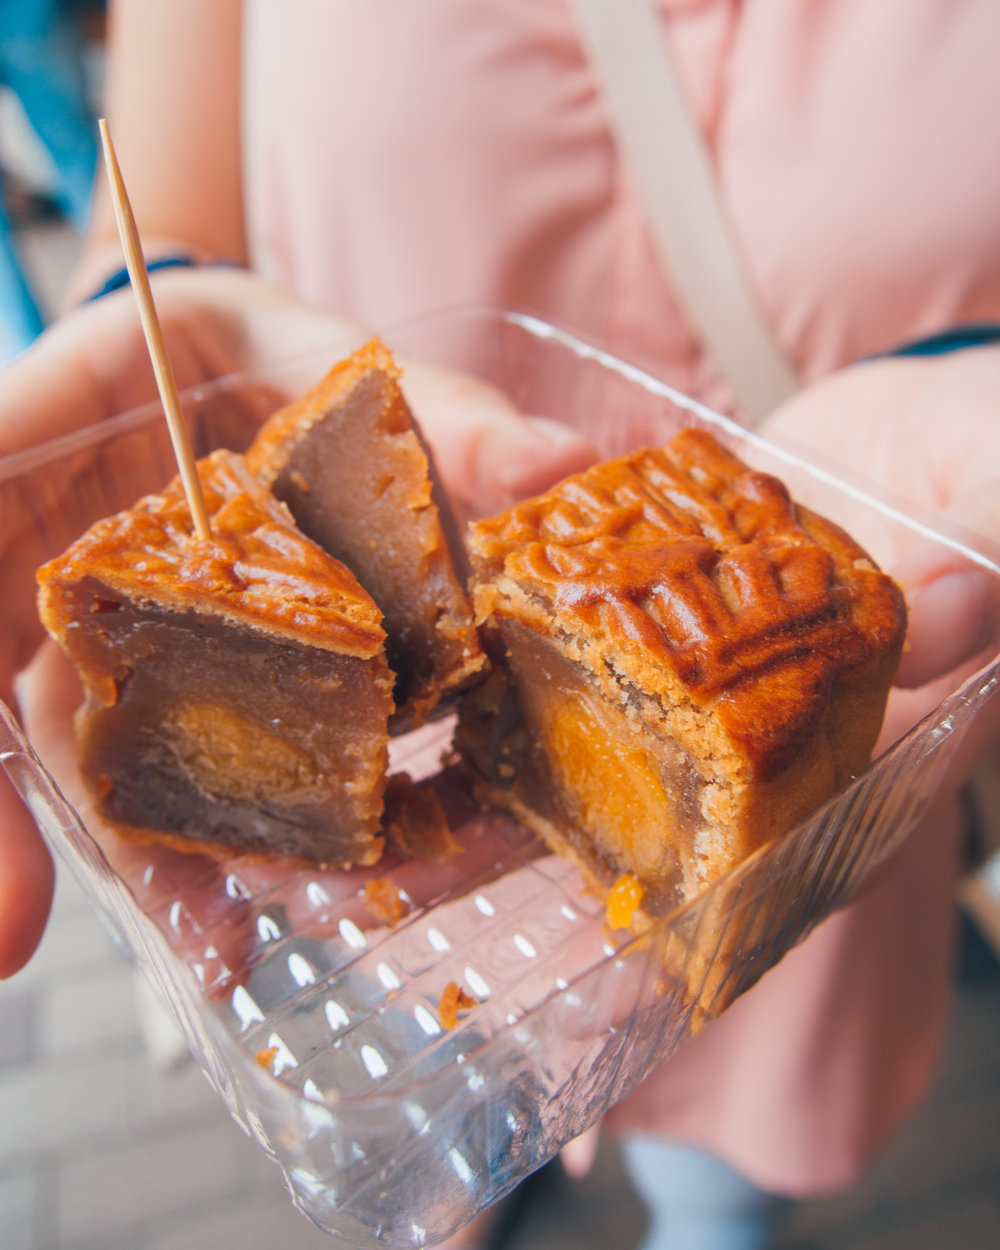 Moon cake in Hong Kong